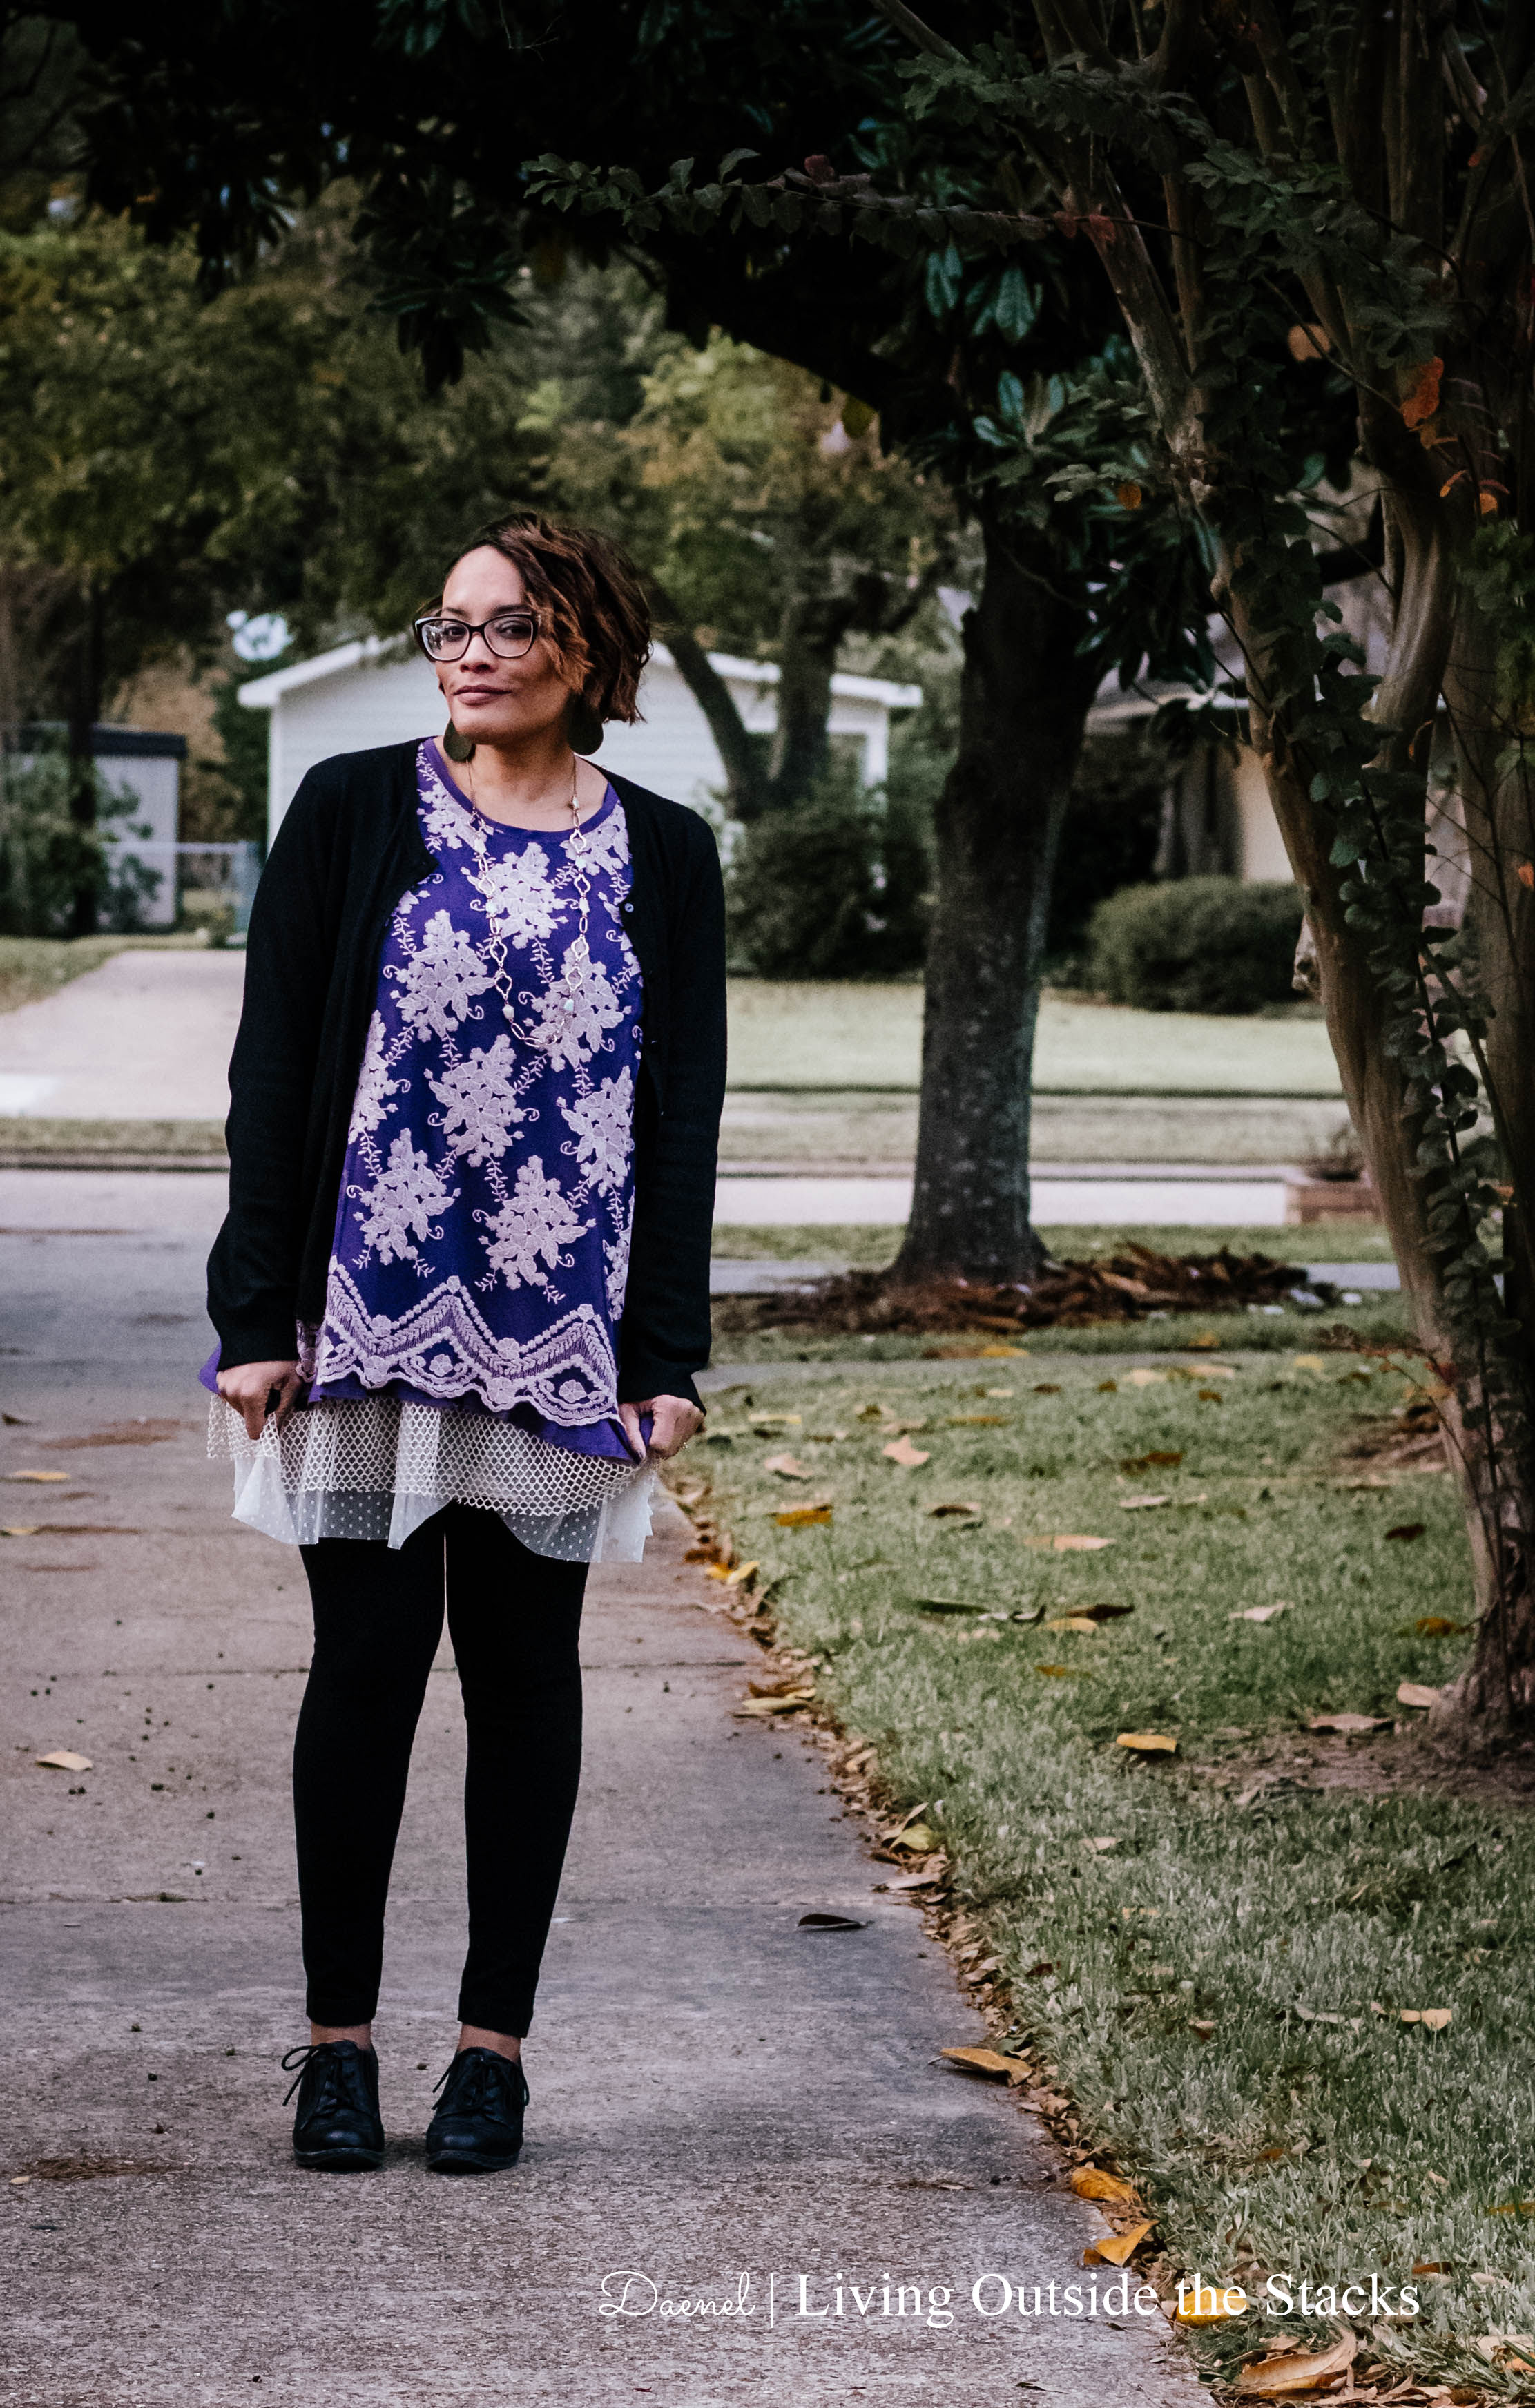 Logo Embroidered Tunic Black Cardigan Black Leggings and Oxfords {living outside the stacks}